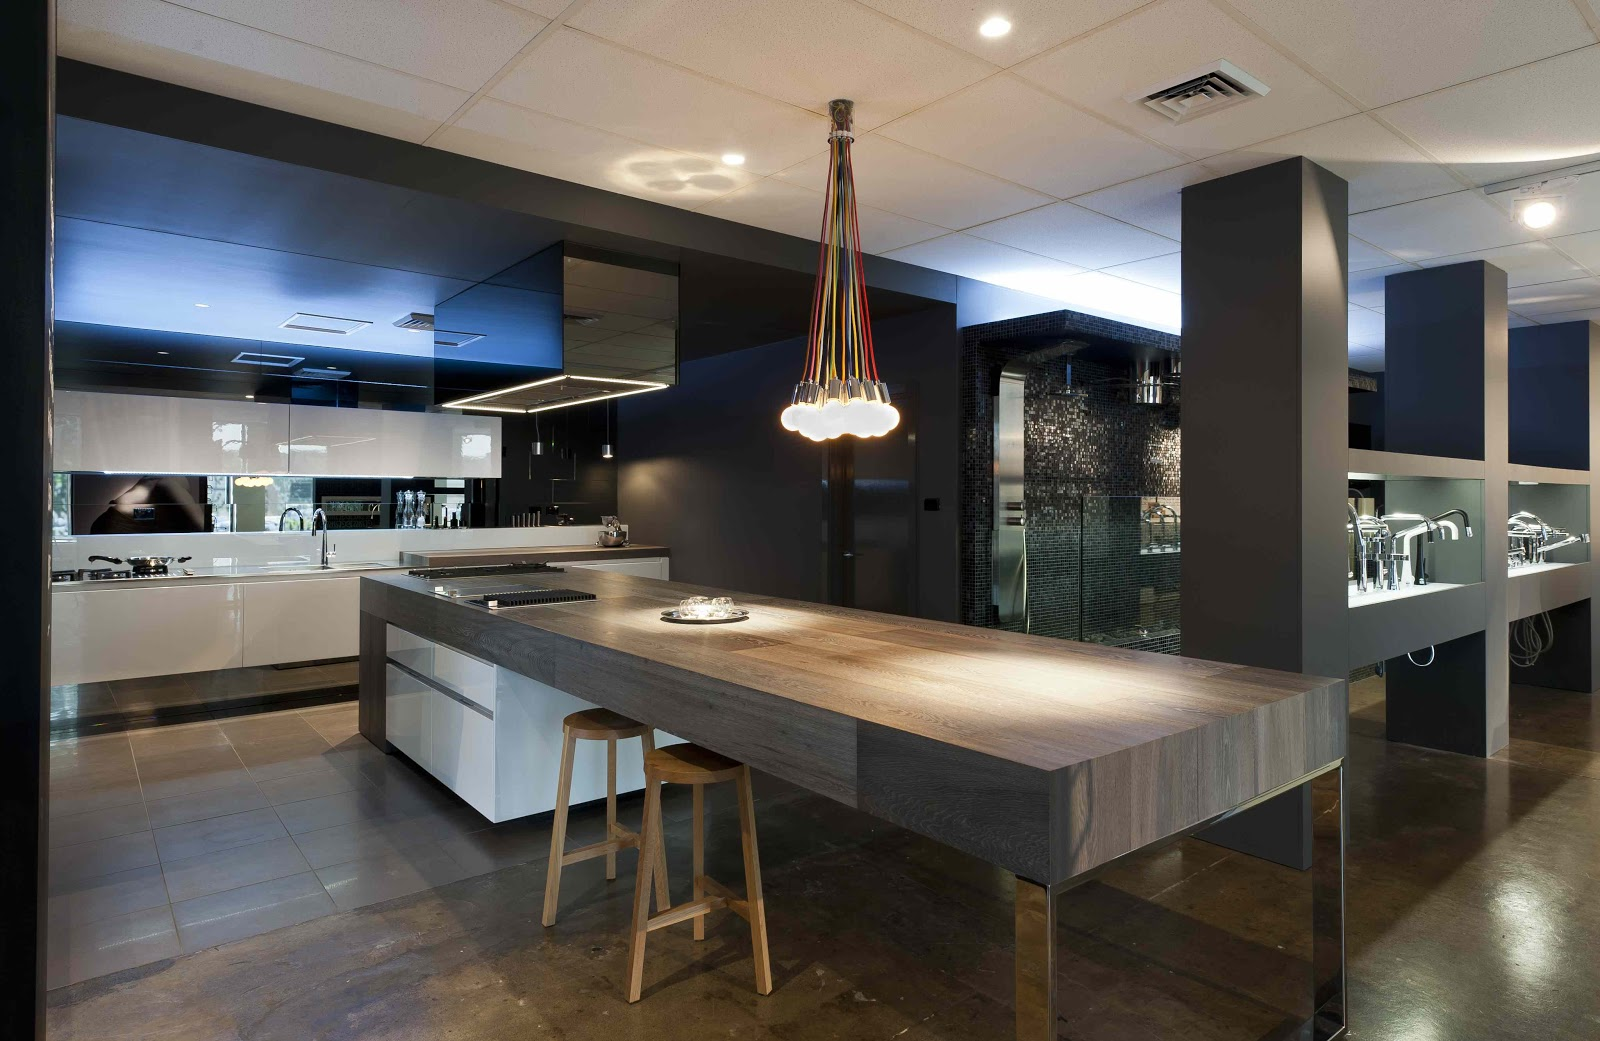 Minosa the cooks kitchen in south melbourne by minosa for Plan cuisine americaine